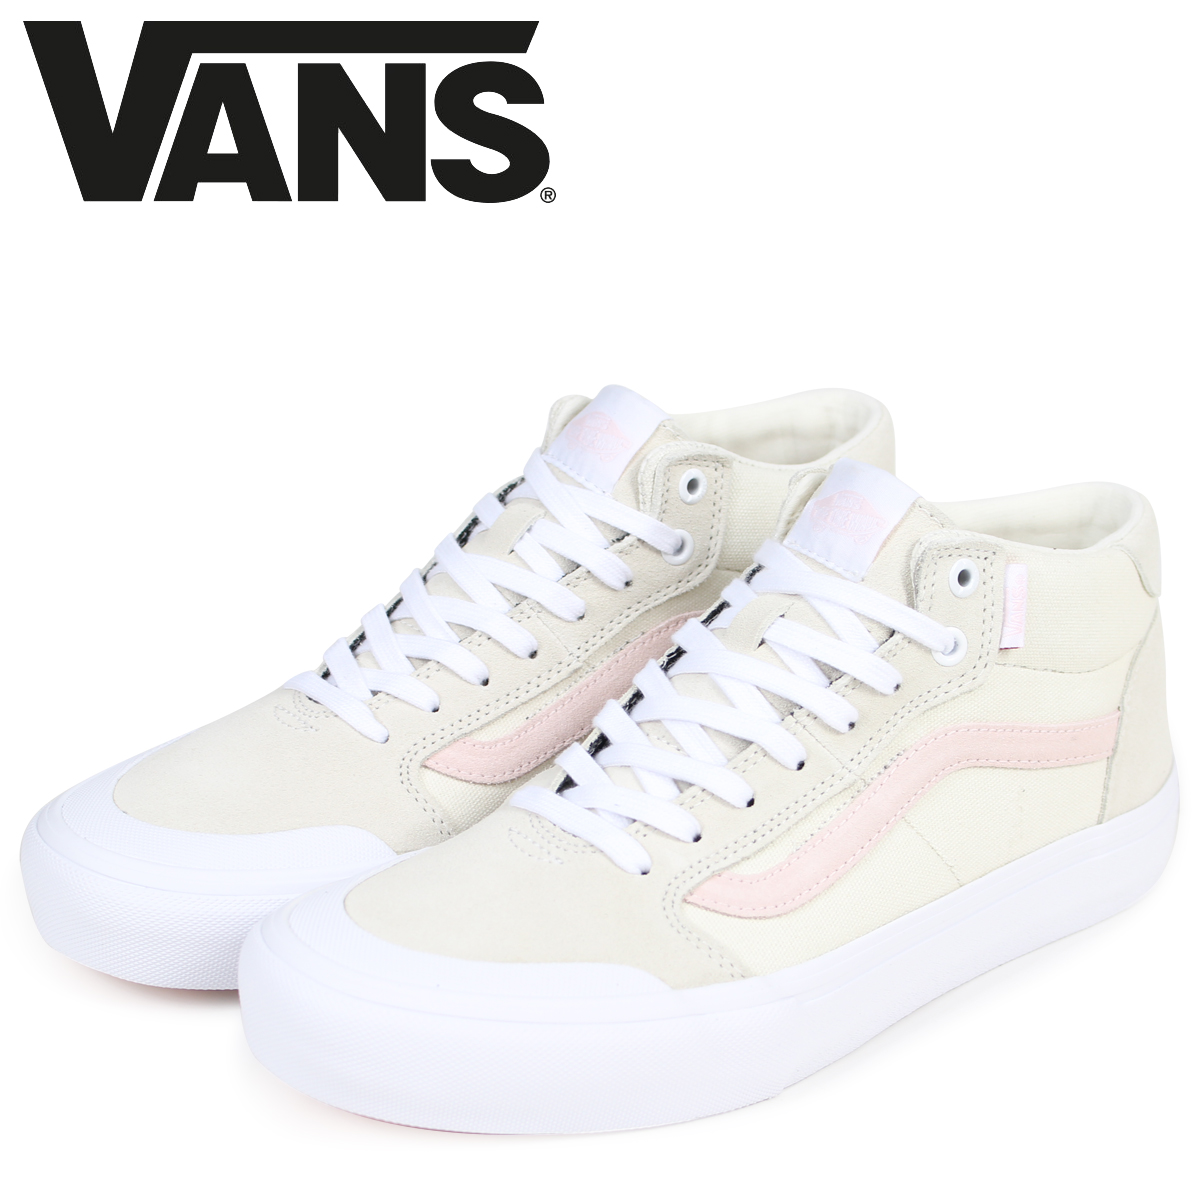 a1642c2a2df0 112 vans STYLE 112 MID PRO sneakers men VANS station wagons-style mid pro  VN0A3DOVQOH off-white  3 1 Shinnyu load